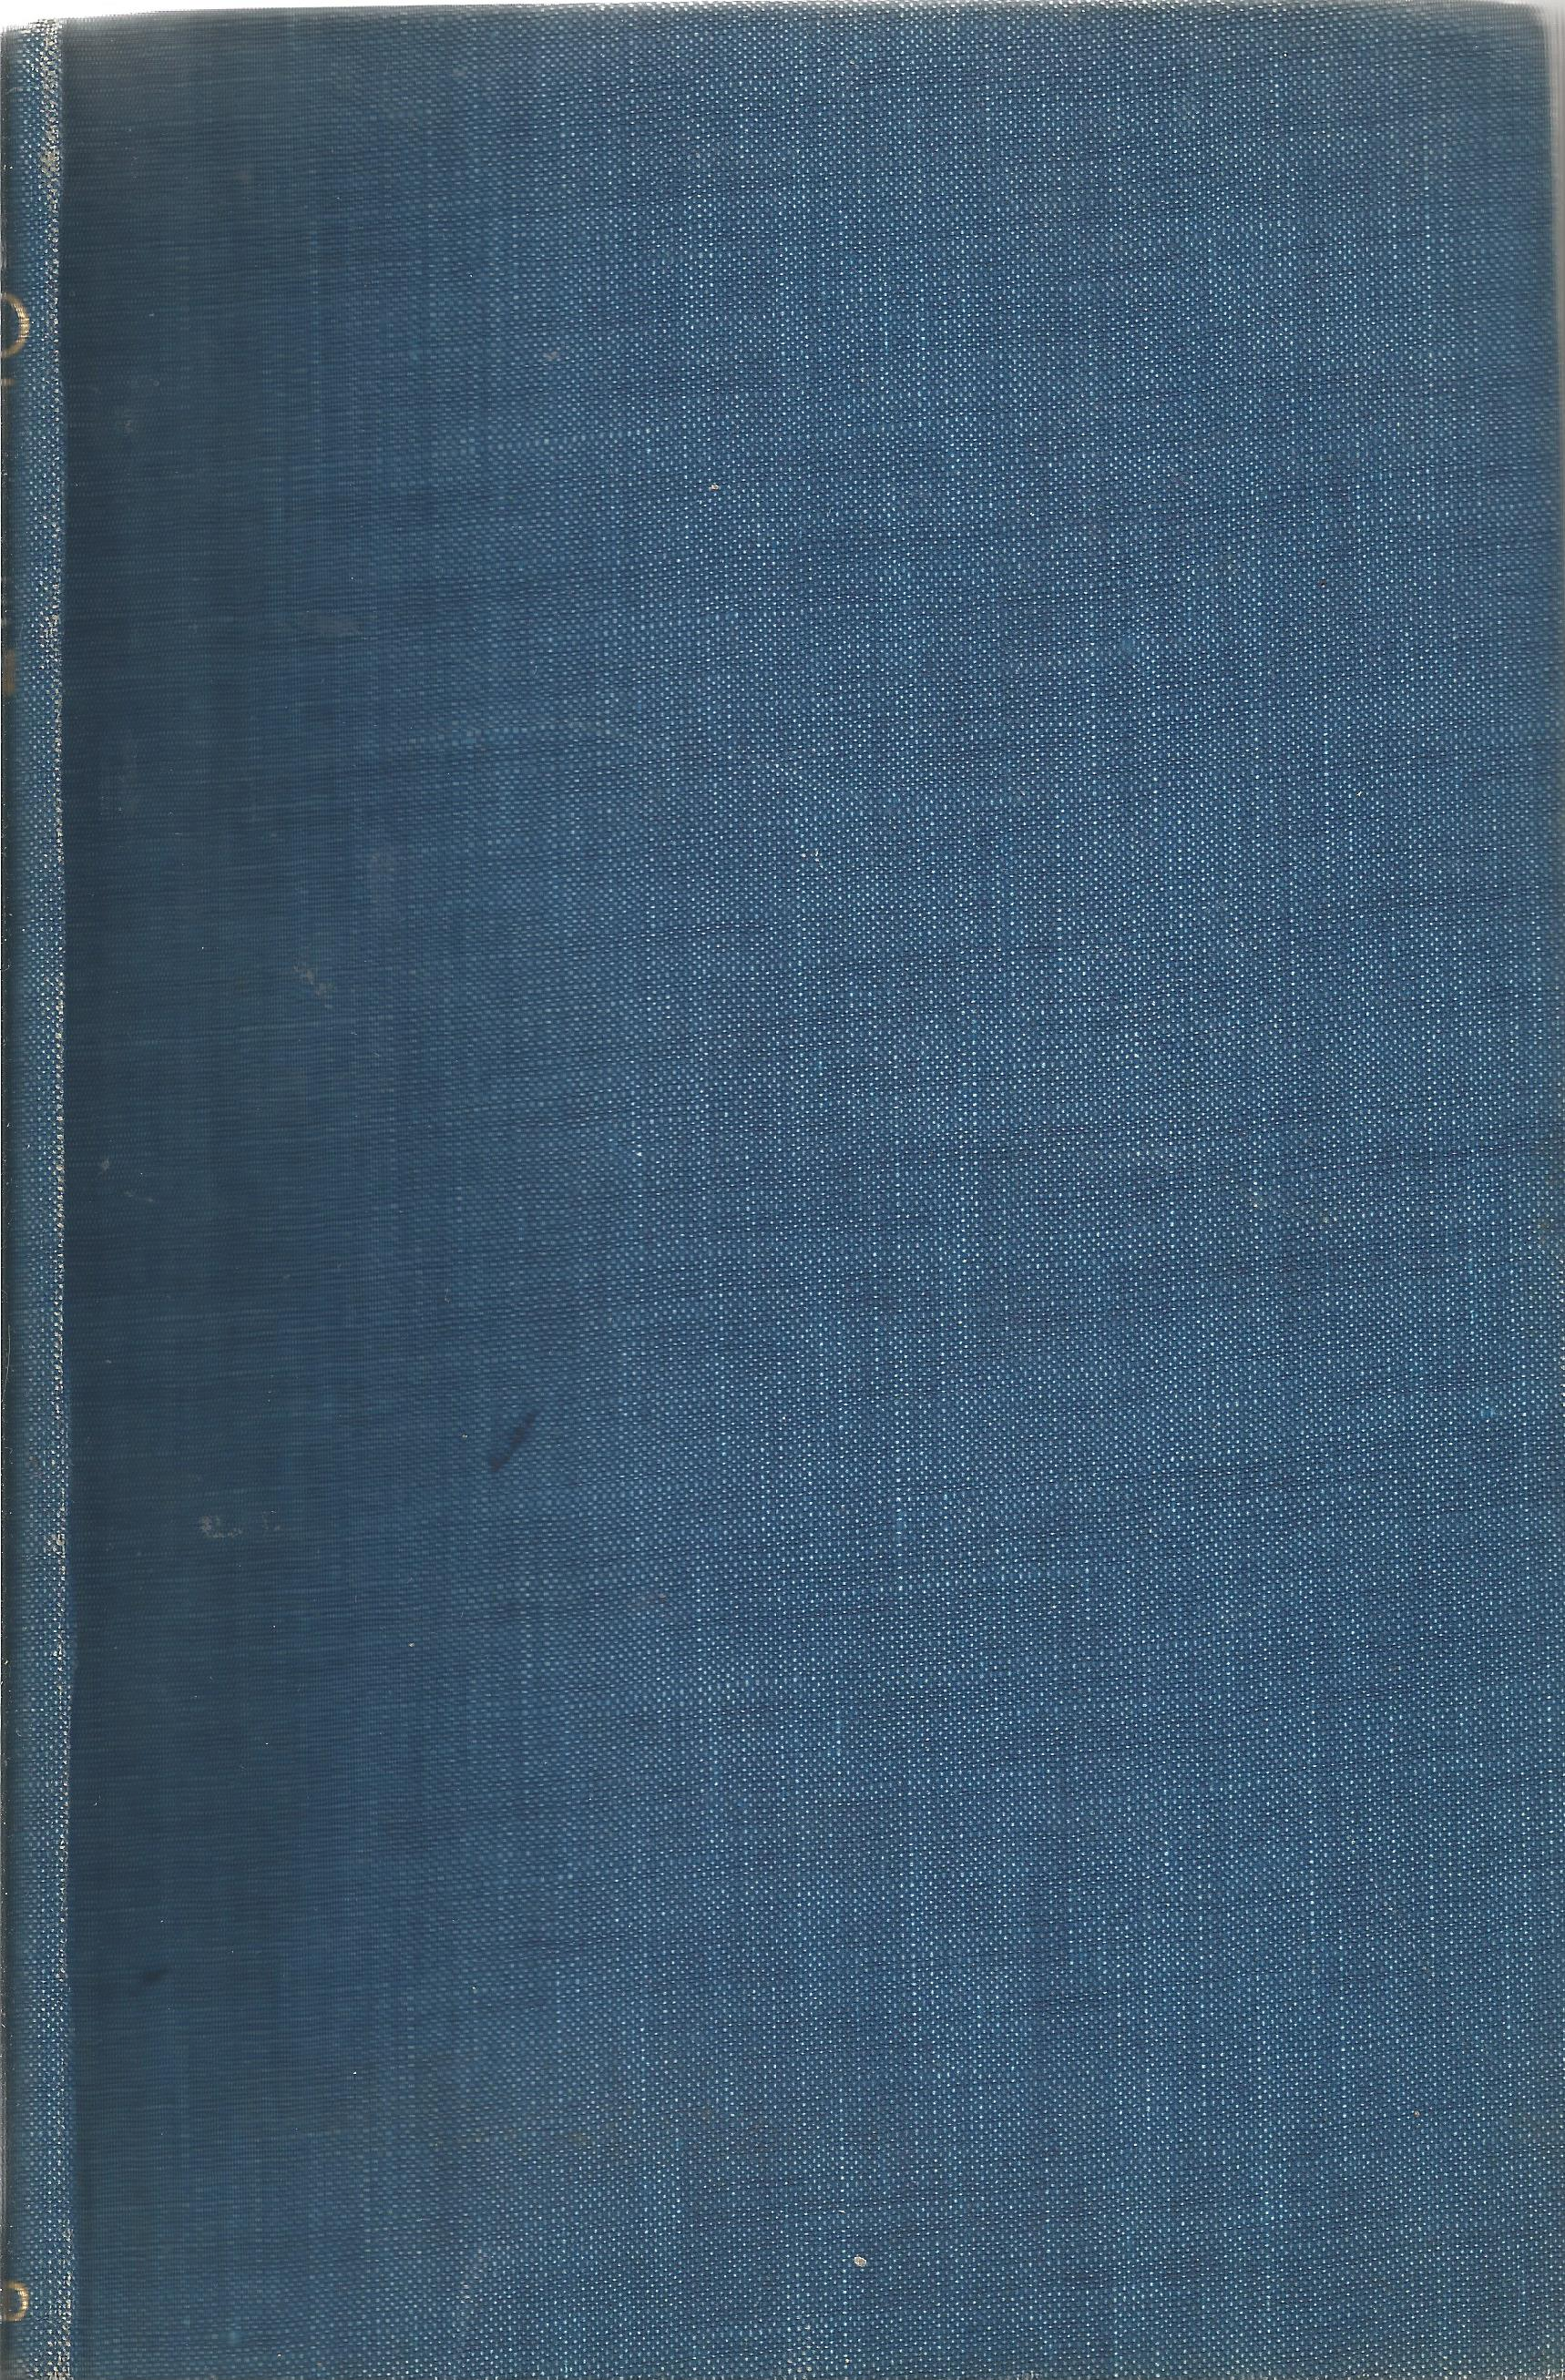 Hardback Book This Thing Called Ballet by George Borodin published by Macdonald & Co (Publishers)